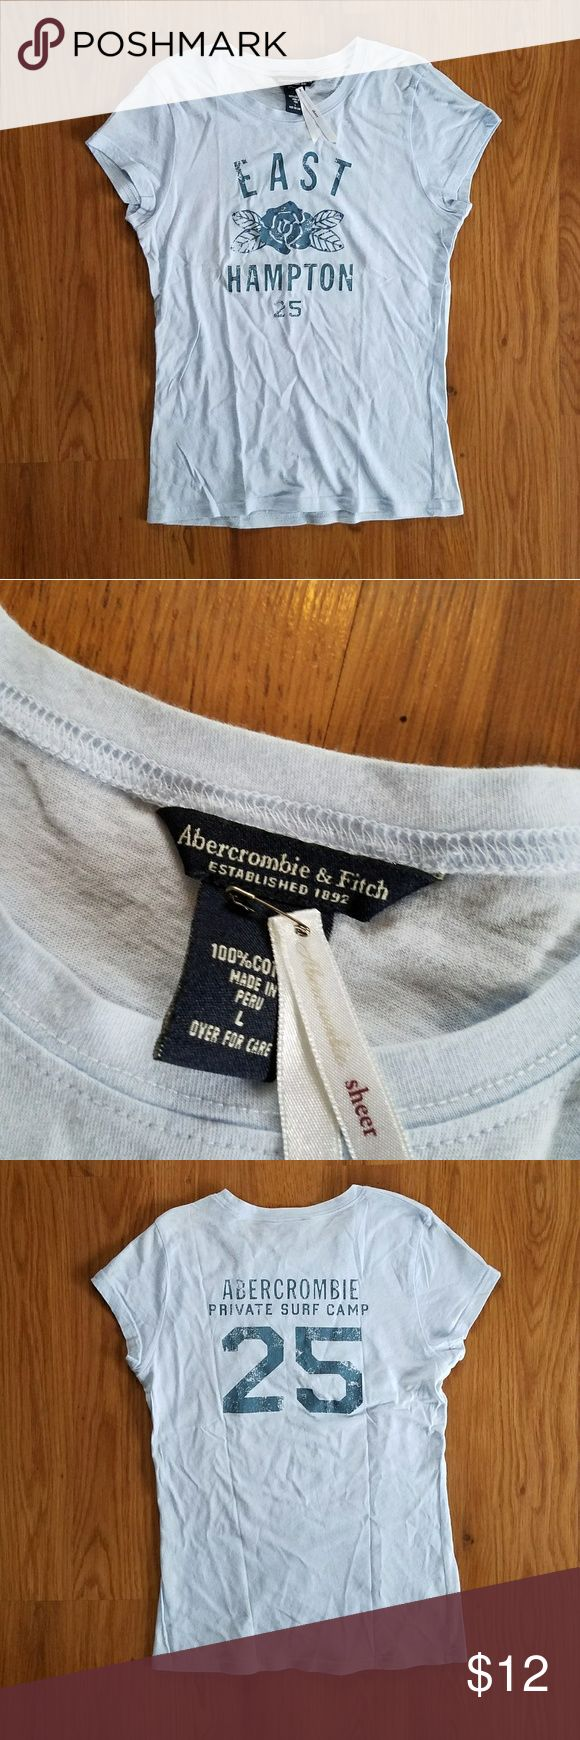 NWOT Abercrombie and Fitch light blue sheer tshirt Vintage late 90s sheer fitted Abercrombie and Fitch tshirt. Dark blue stamped design with a few small rhinestones on the front. 100% cotton. Excellent condition. Abercrombie & Fitch Tops Tees - Short Sleeve